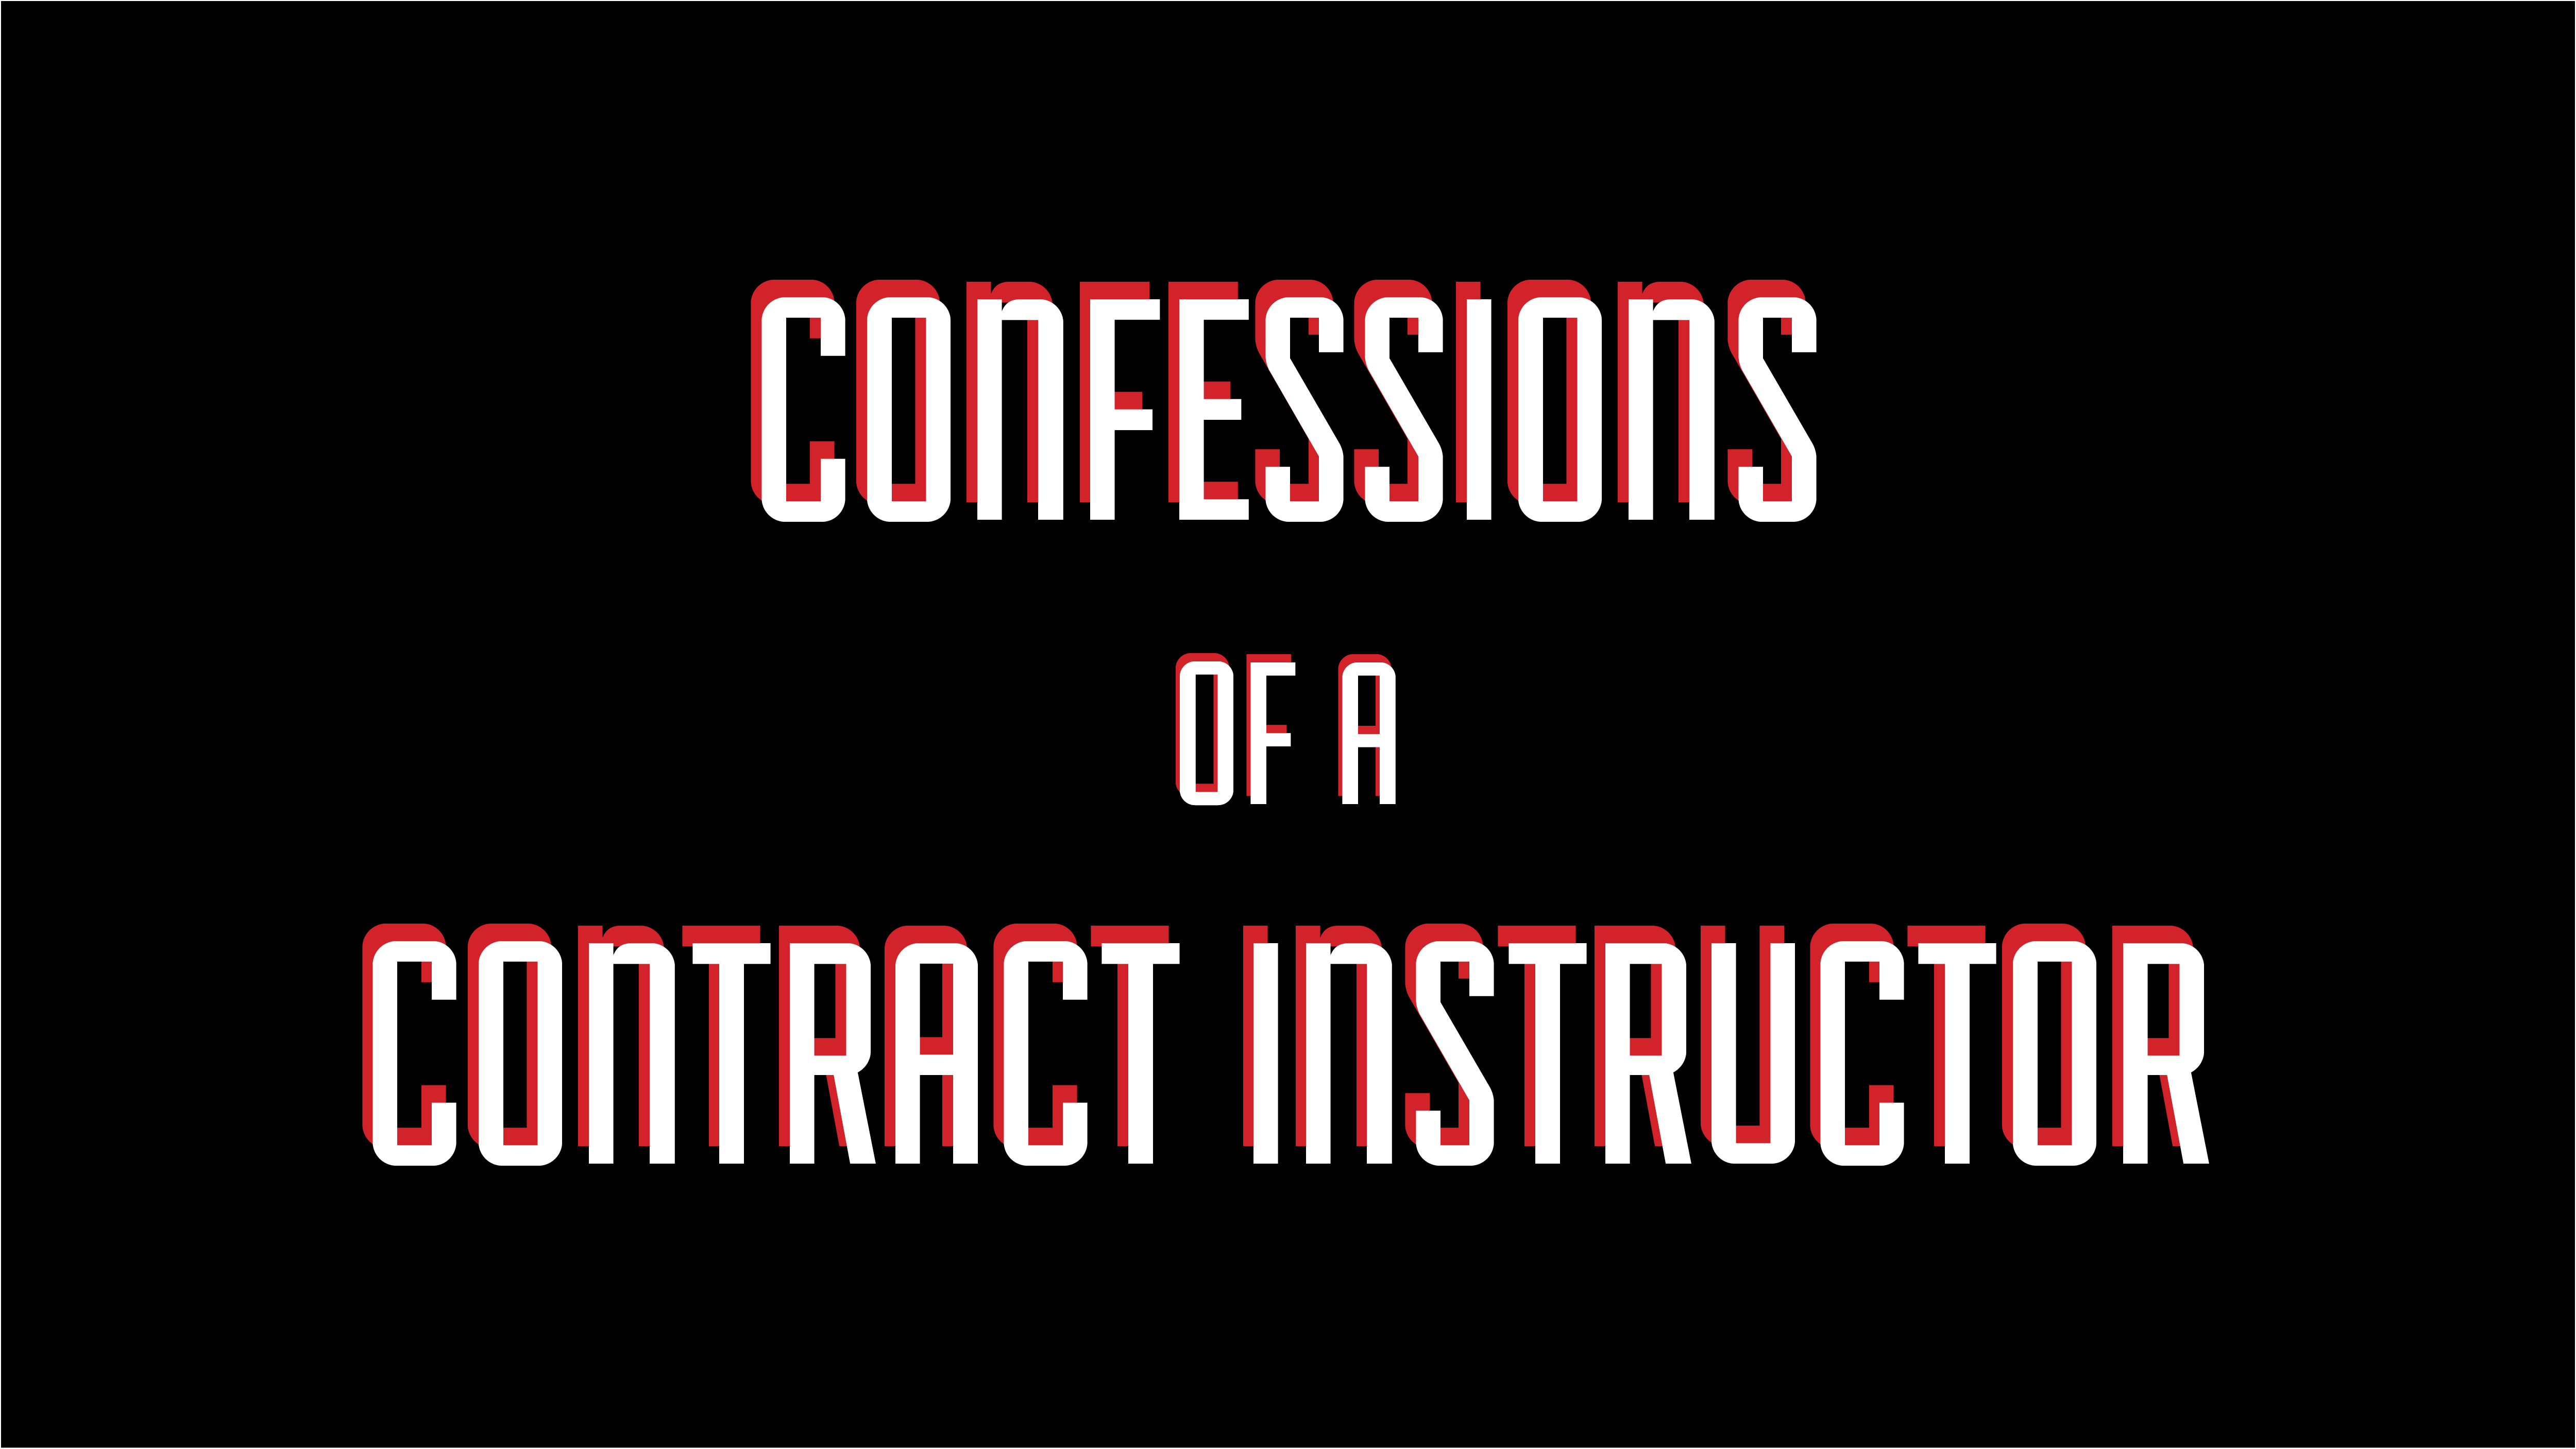 Confessions of a Contract Instructor: Peripheral Profs from the Precariat 1